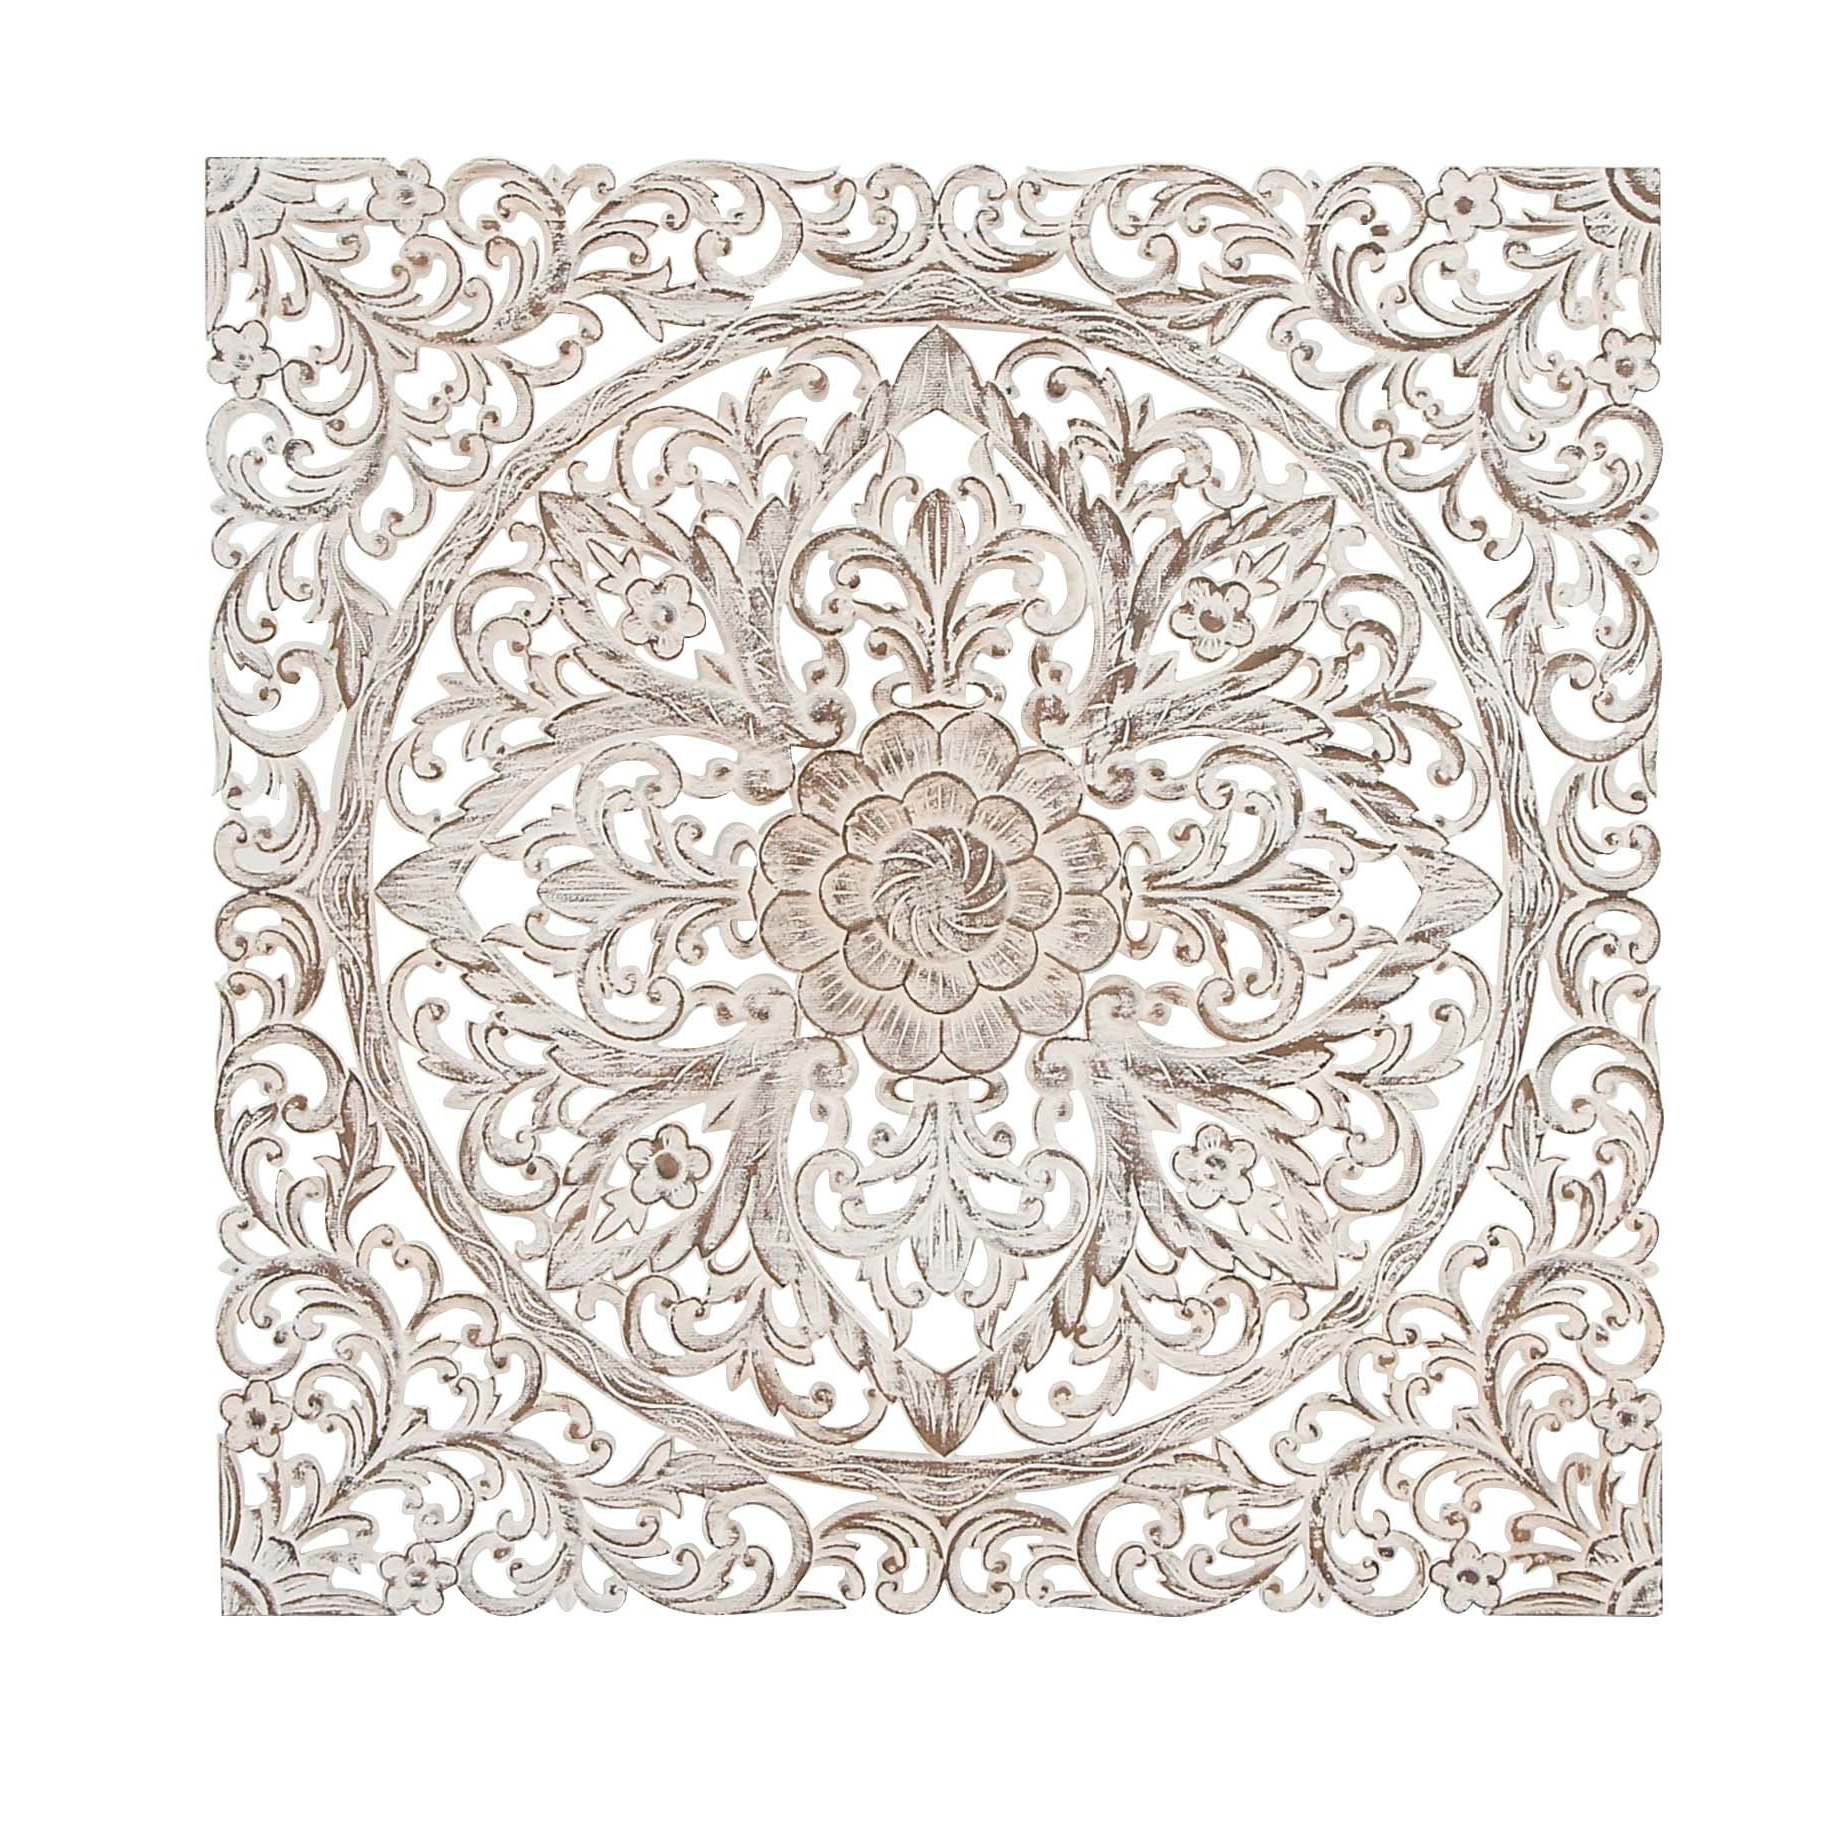 Preferred Medallion Wall Art Pertaining To Bungalow Rose Traditional Carved Floral Medallion Wall Decor (View 11 of 15)